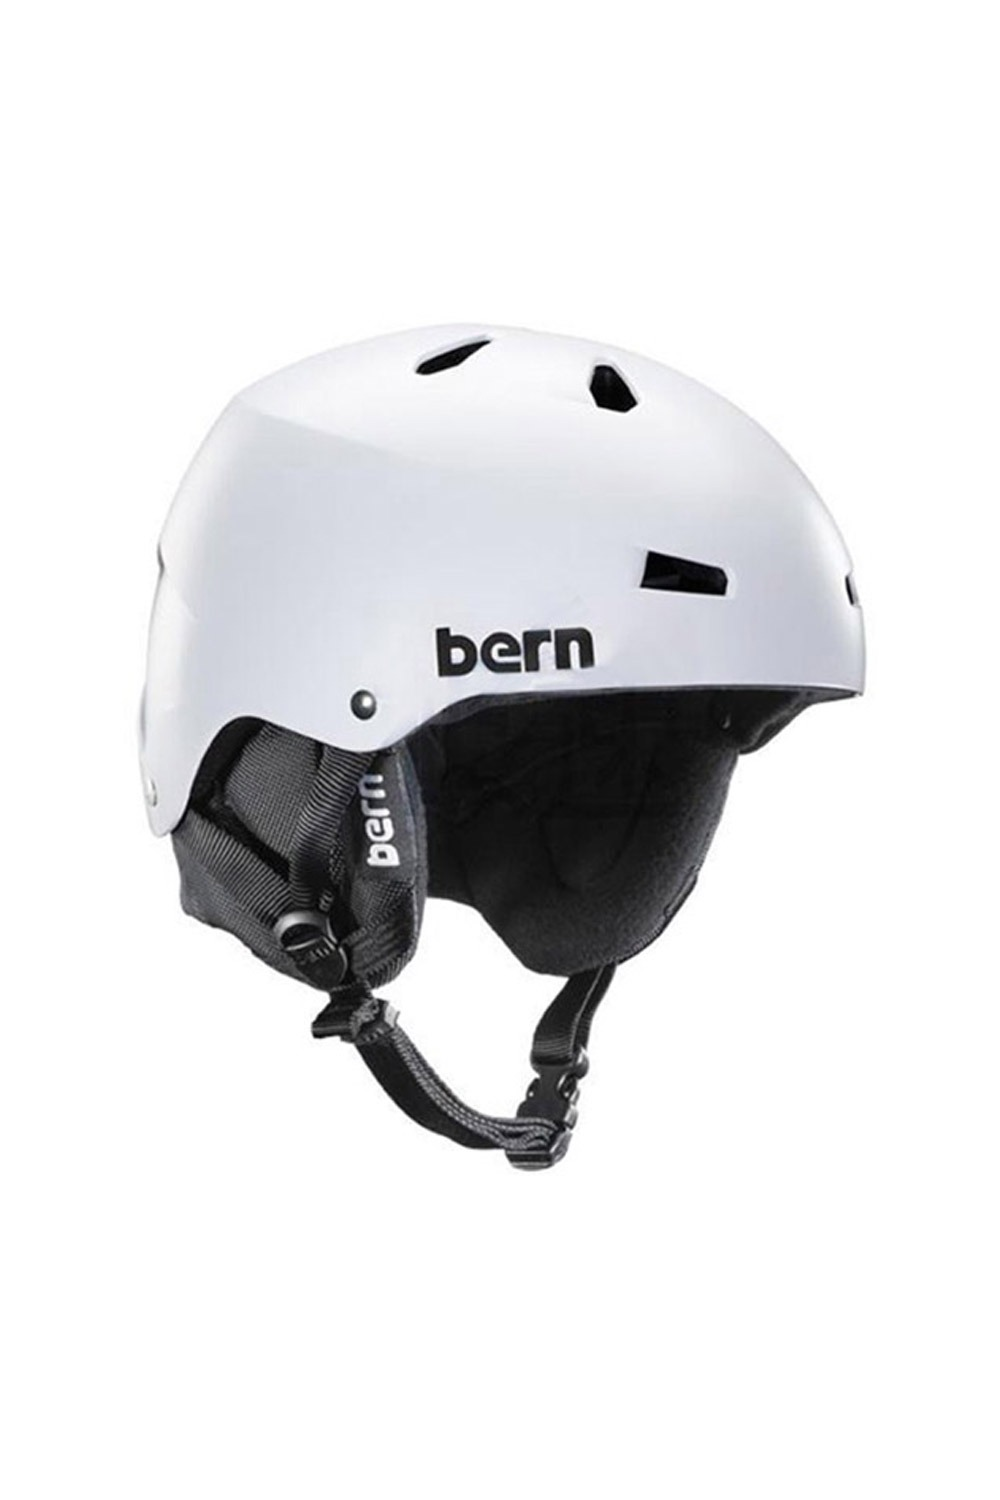 번/베른 아시안 핏 팀 마콘_남녀공용_1920 BERN_ASIAN FIT TEAM MACON_MATTE WHITE_FBE909WH[18]_DFBE909WH